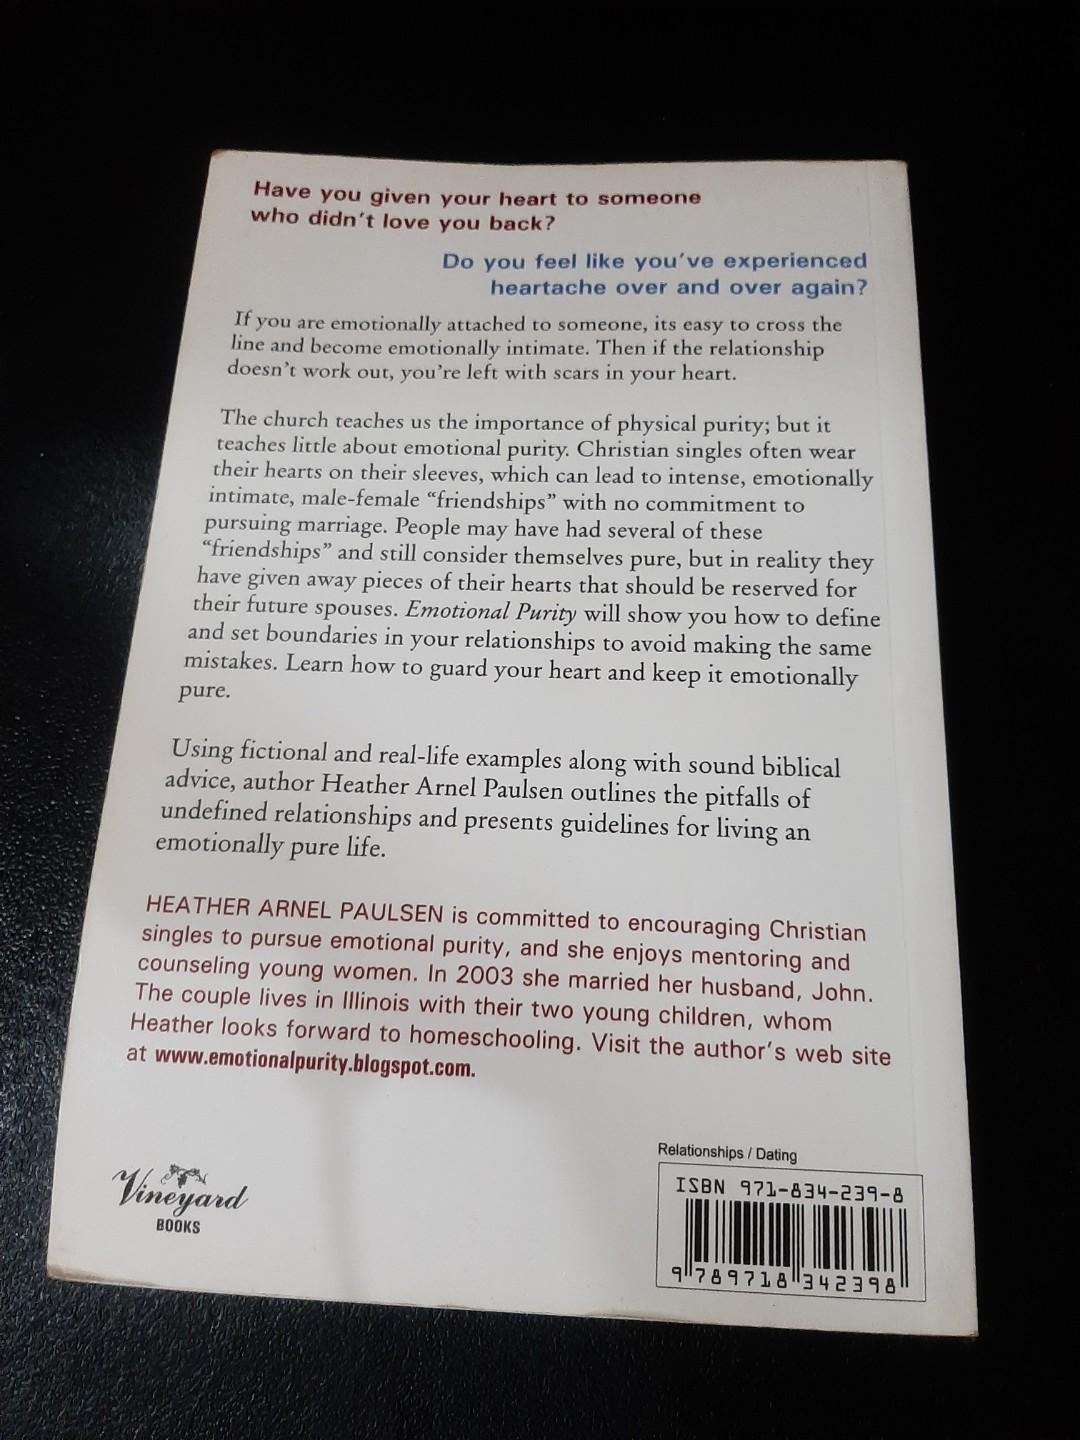 Emotional Purity: An Affair of the Heart by Heather Arnel Paulsen